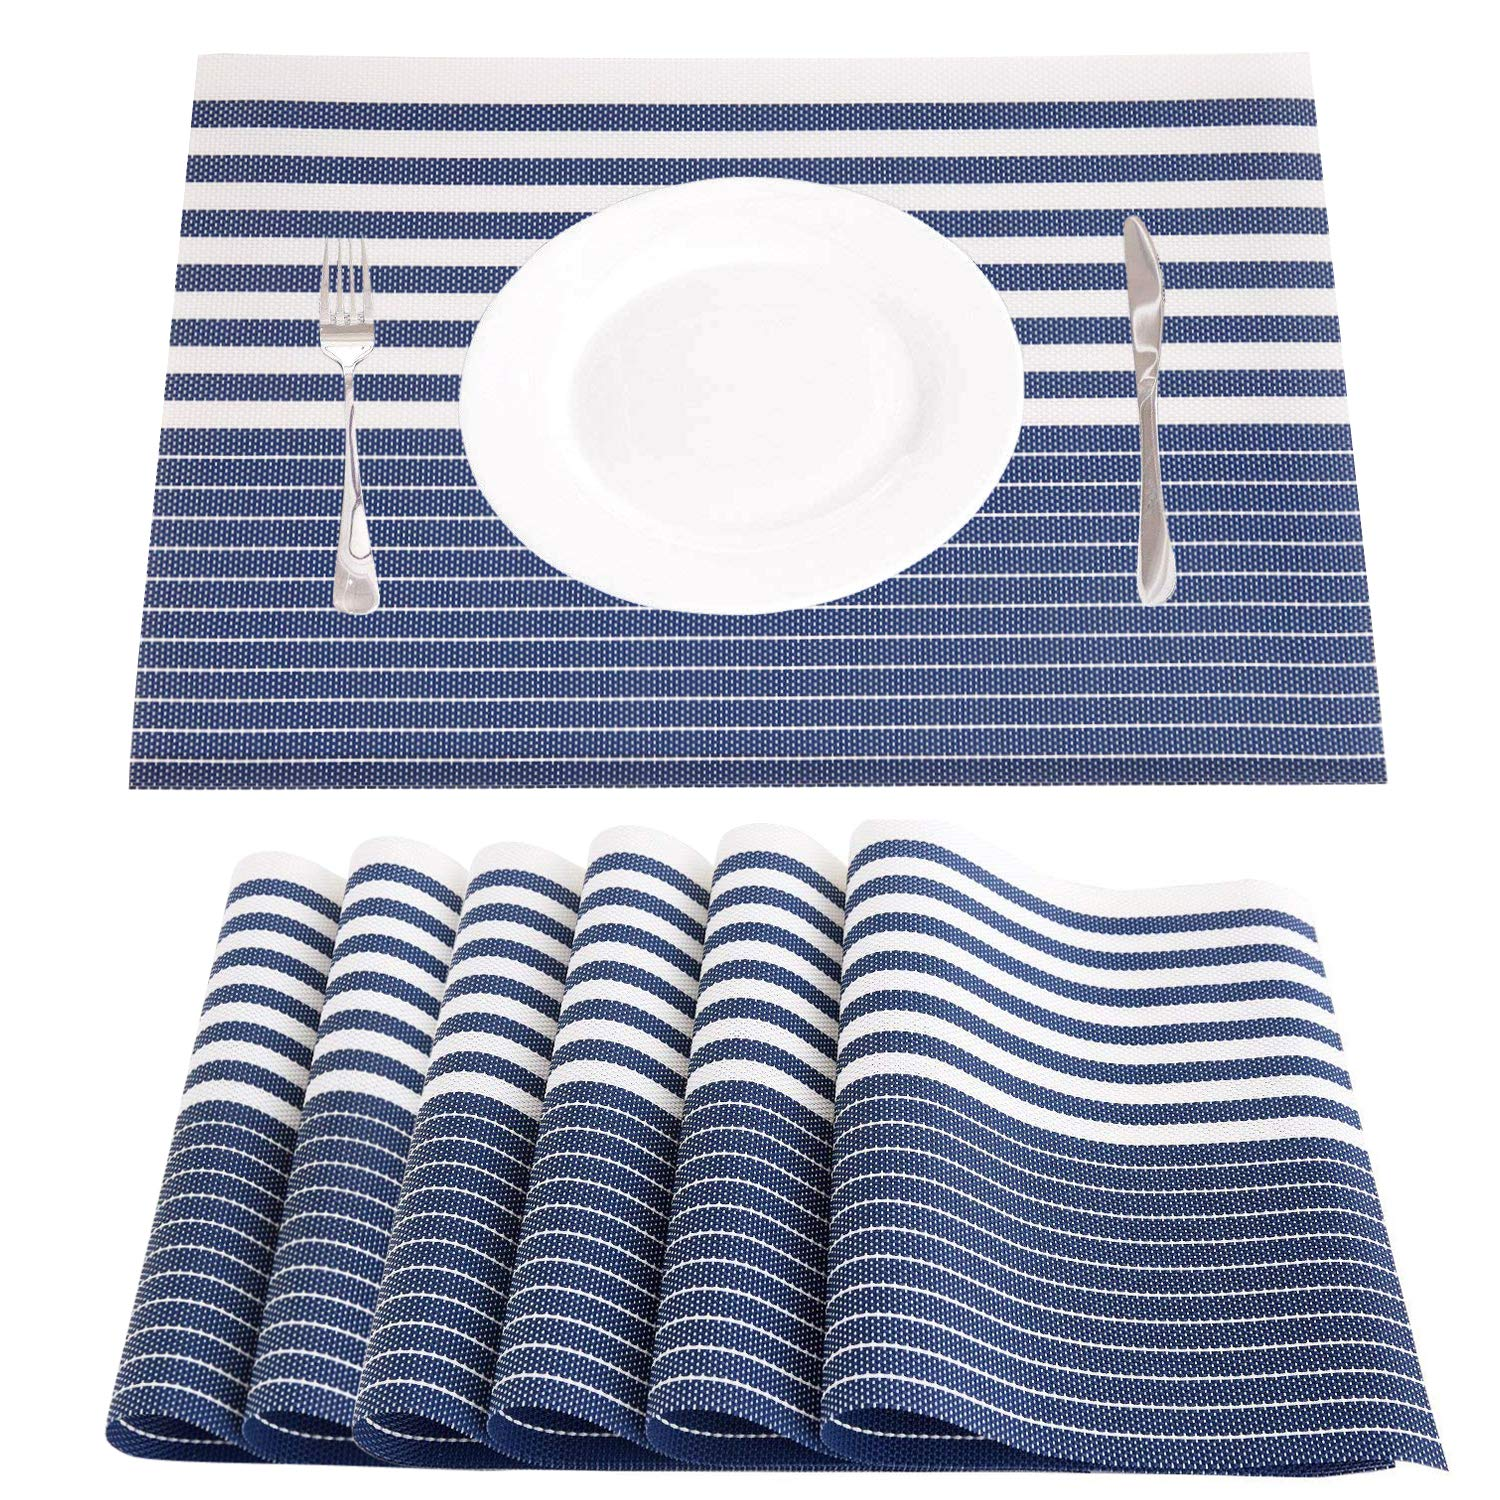 NJCharms Placemats Set of 6, Heat Resistant Washable Nautical Blue Placemats for Dining Kitchen Table Environmental PVC Wipeable Crossweave Vinyl Woven Placemats Table Mats Easy to Clean, Navy Blue